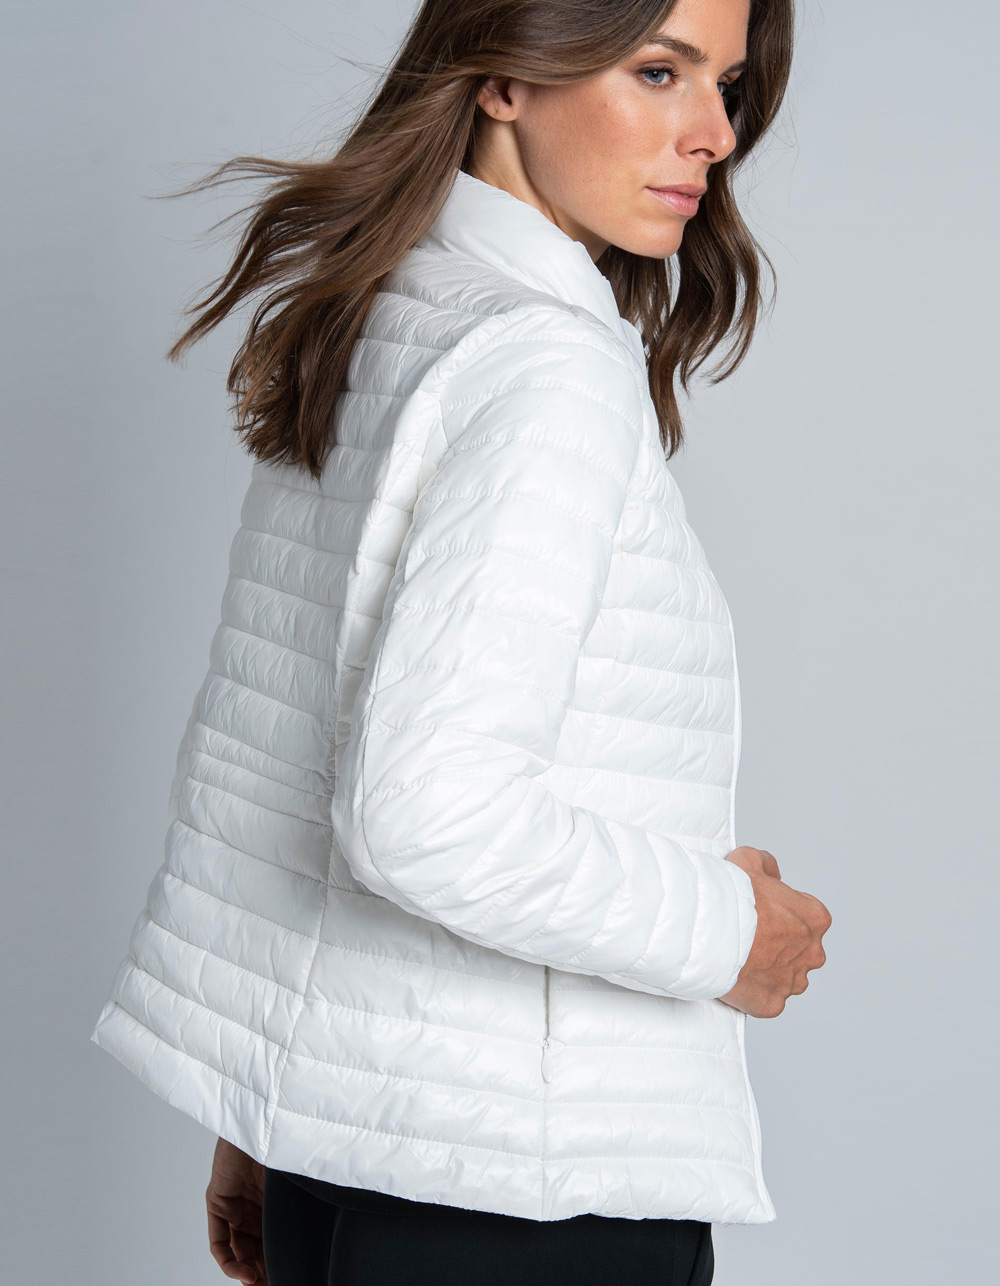 Chaqueta acolchada blanca - Backside